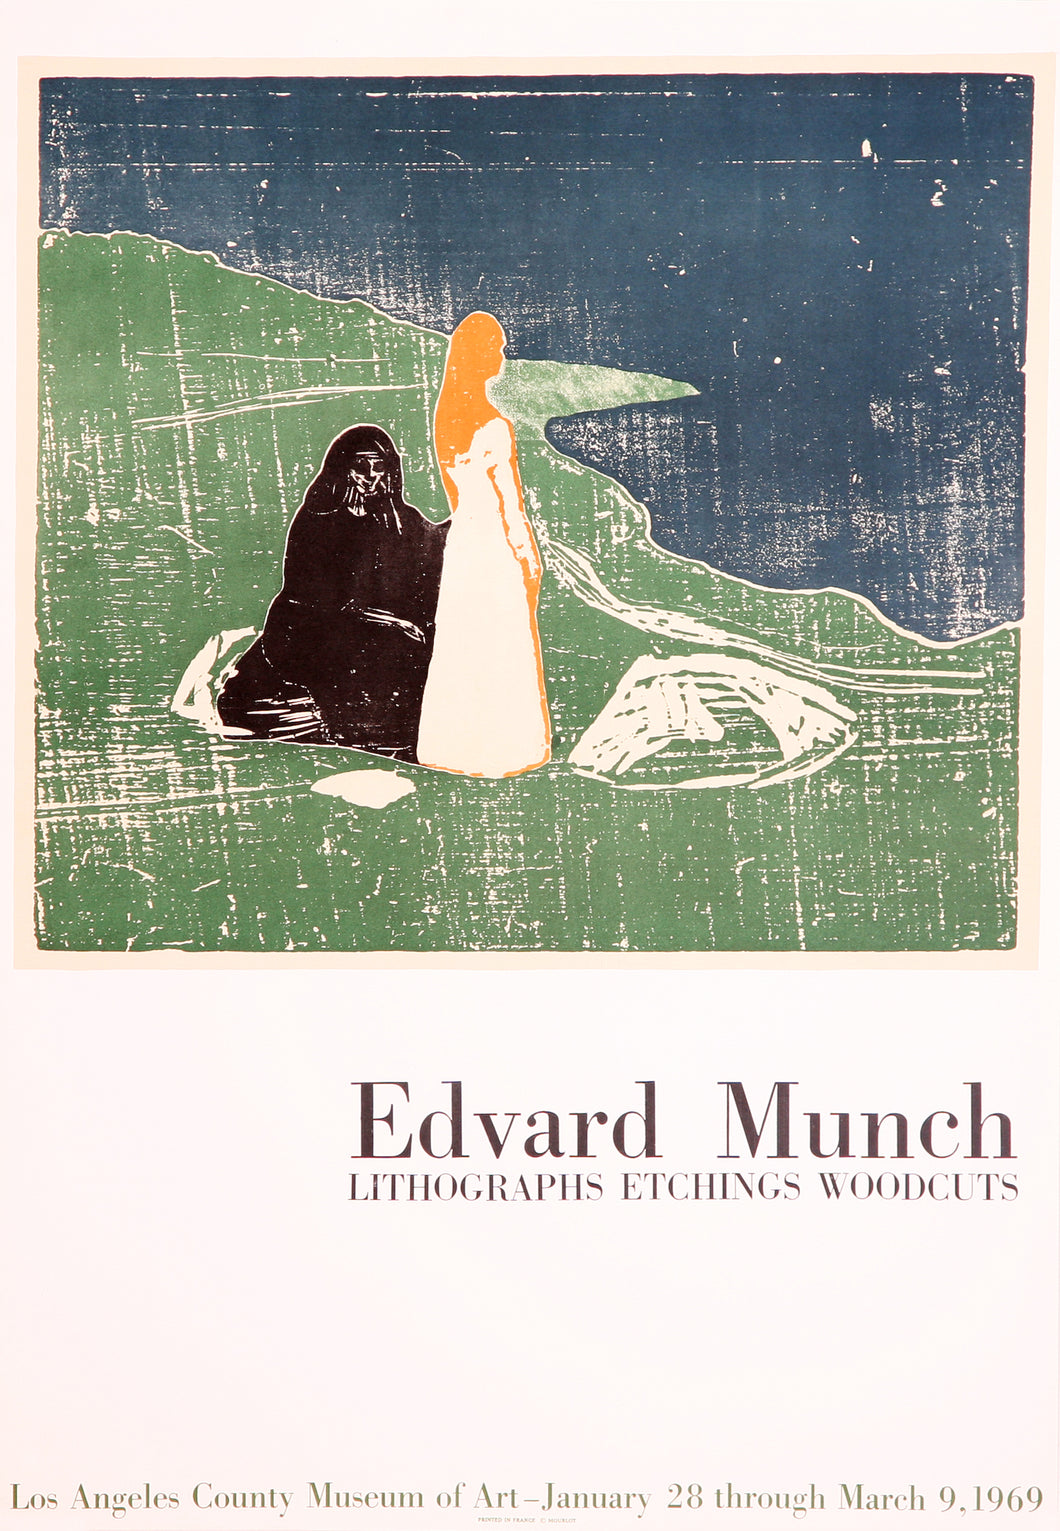 Lithographs, Etching, Woodcuts - LACMA (after) Edvard Munch, 1969